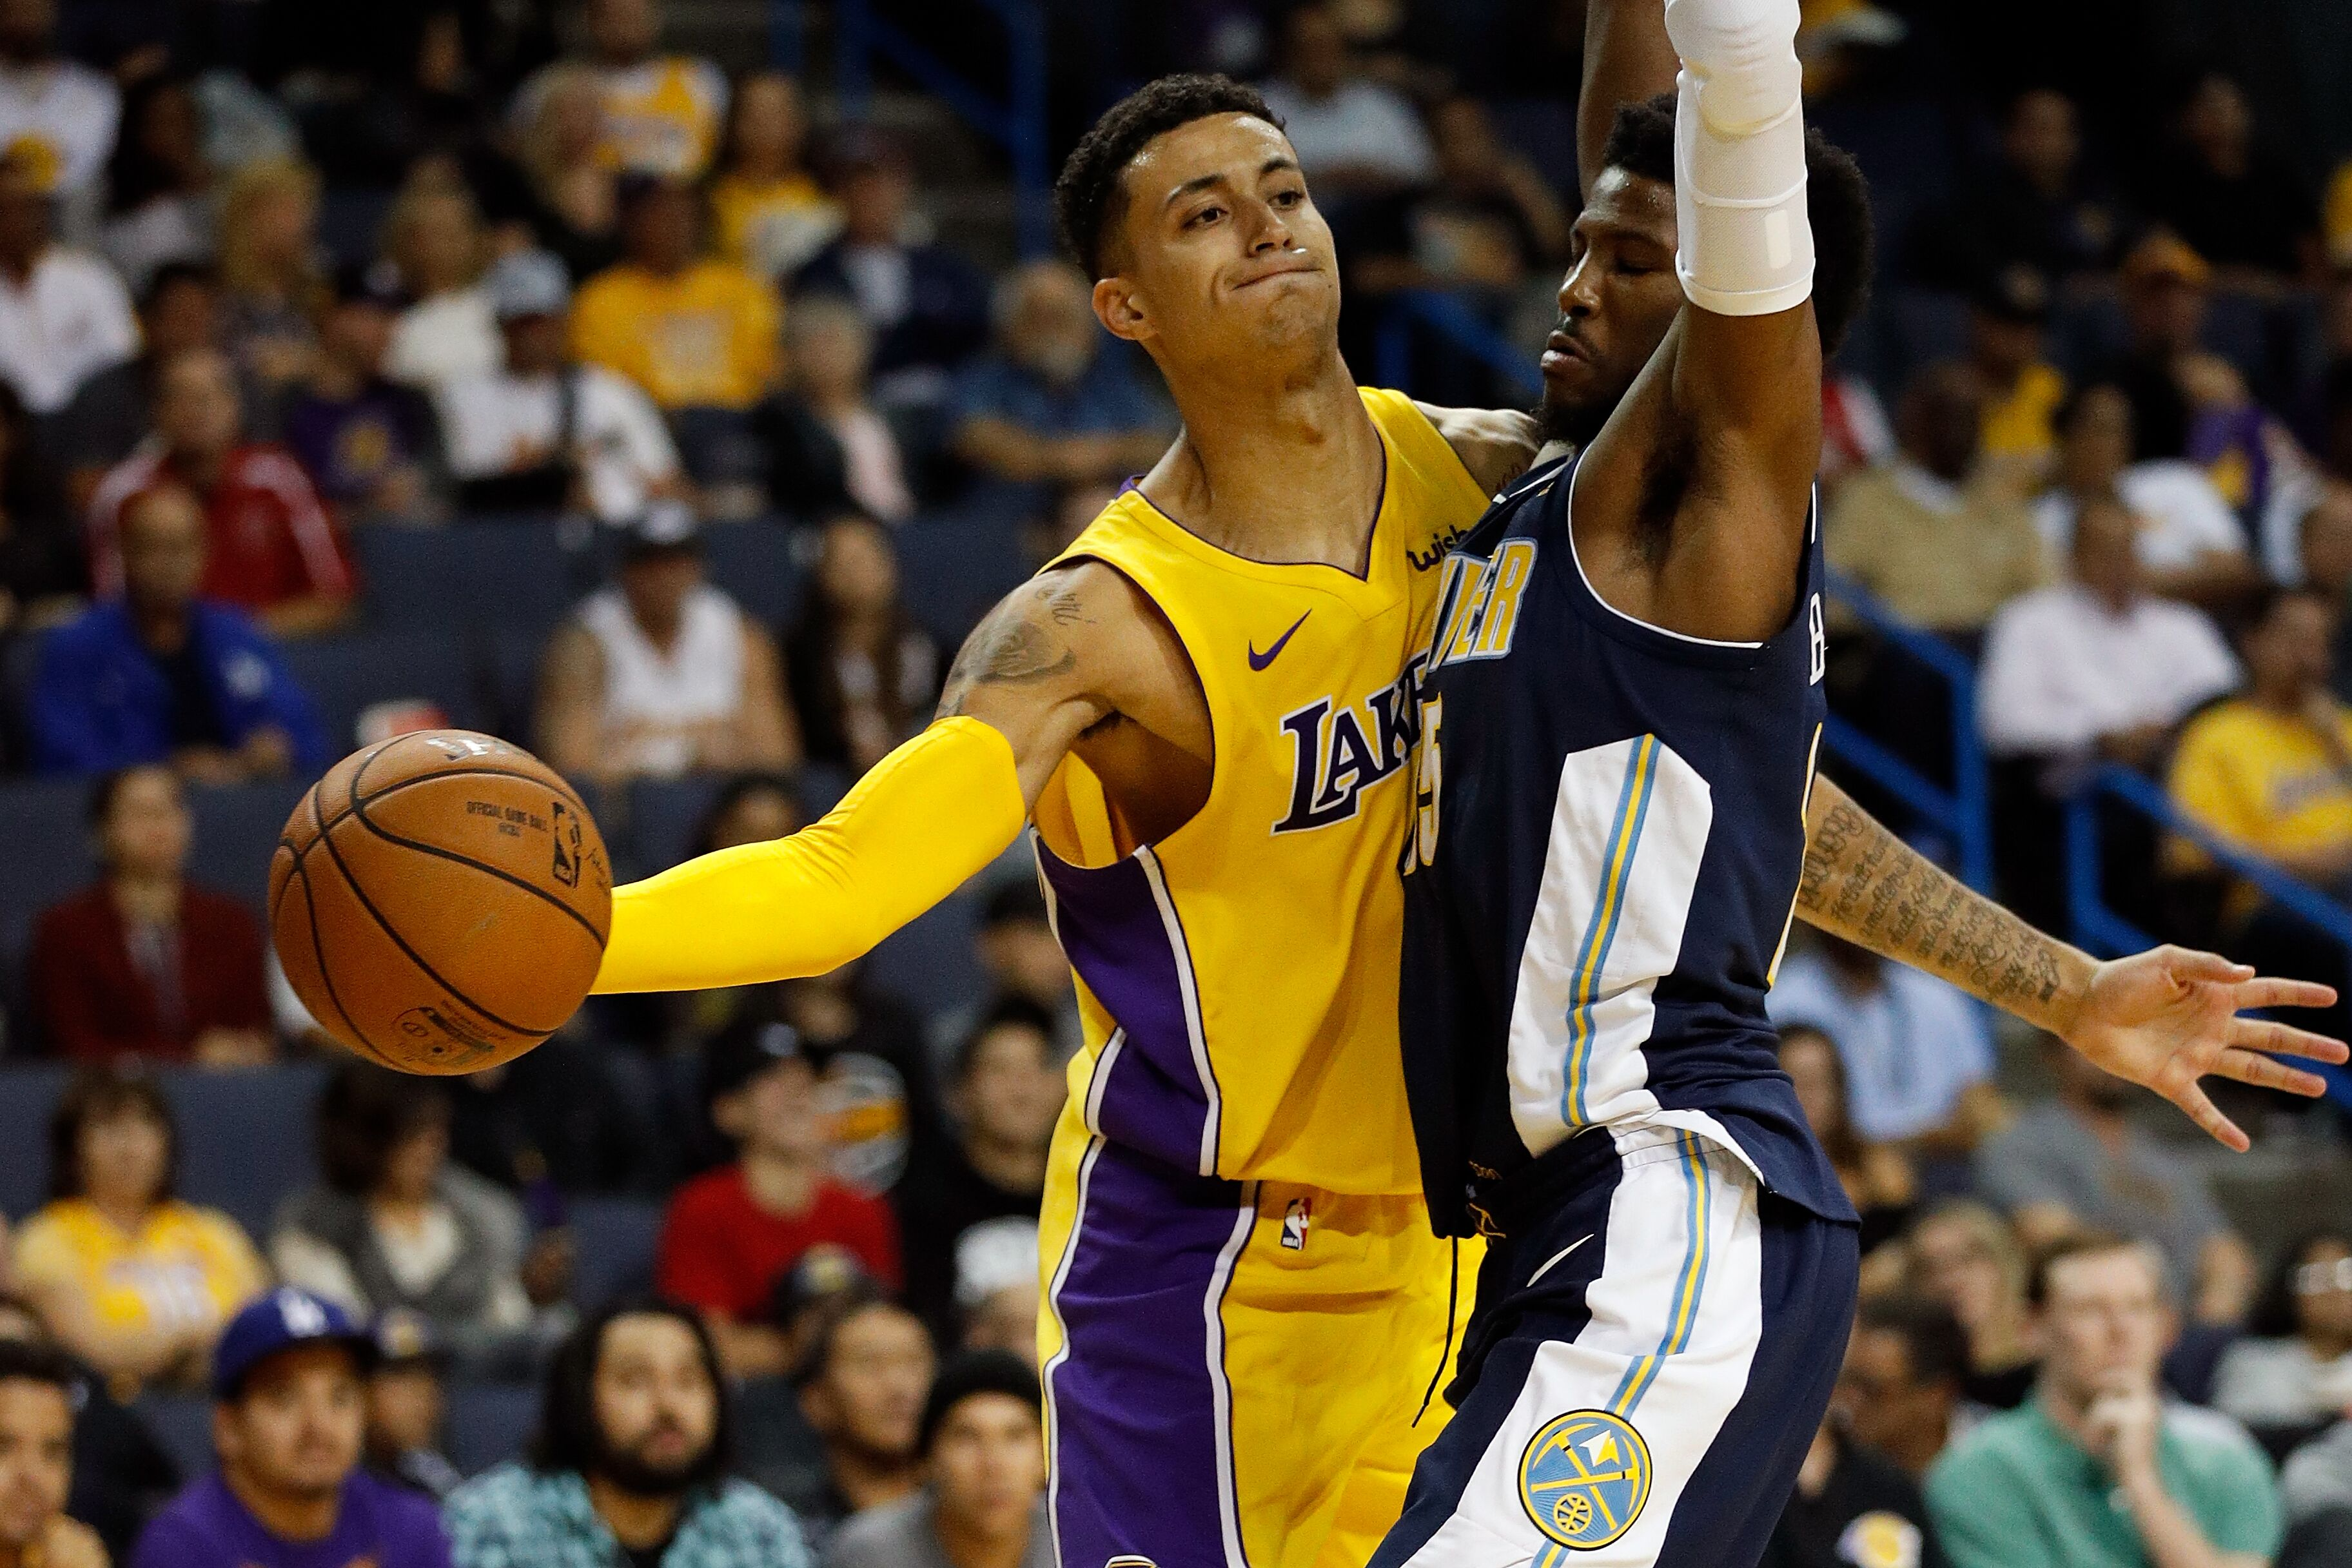 858484858-denver-nuggets-v-los-angeles-lakers.jpg